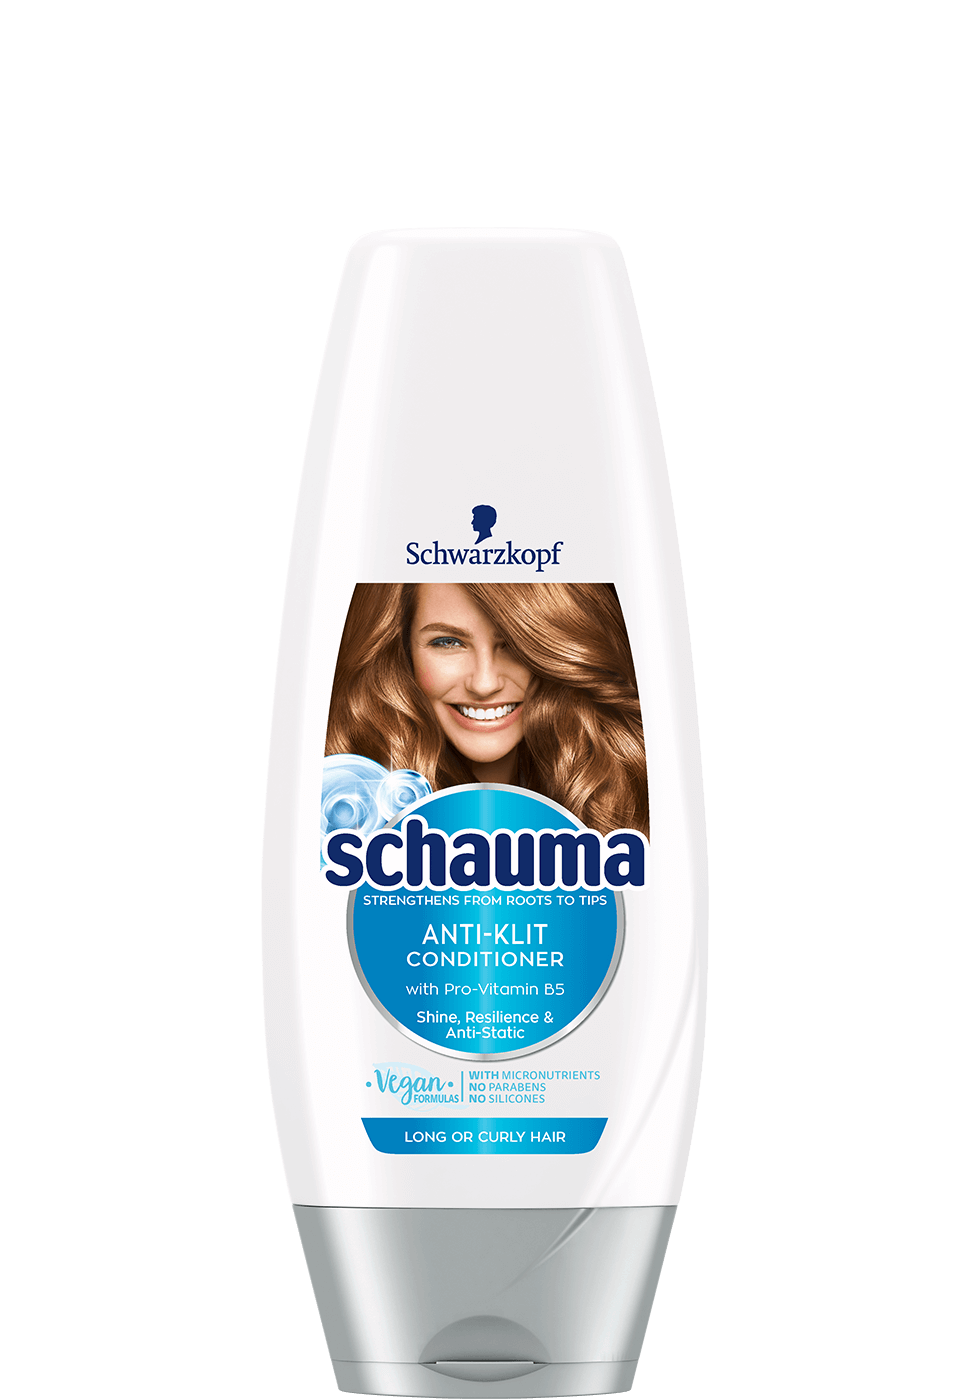 schauma_com_anti_klit_conditioner_970x1400